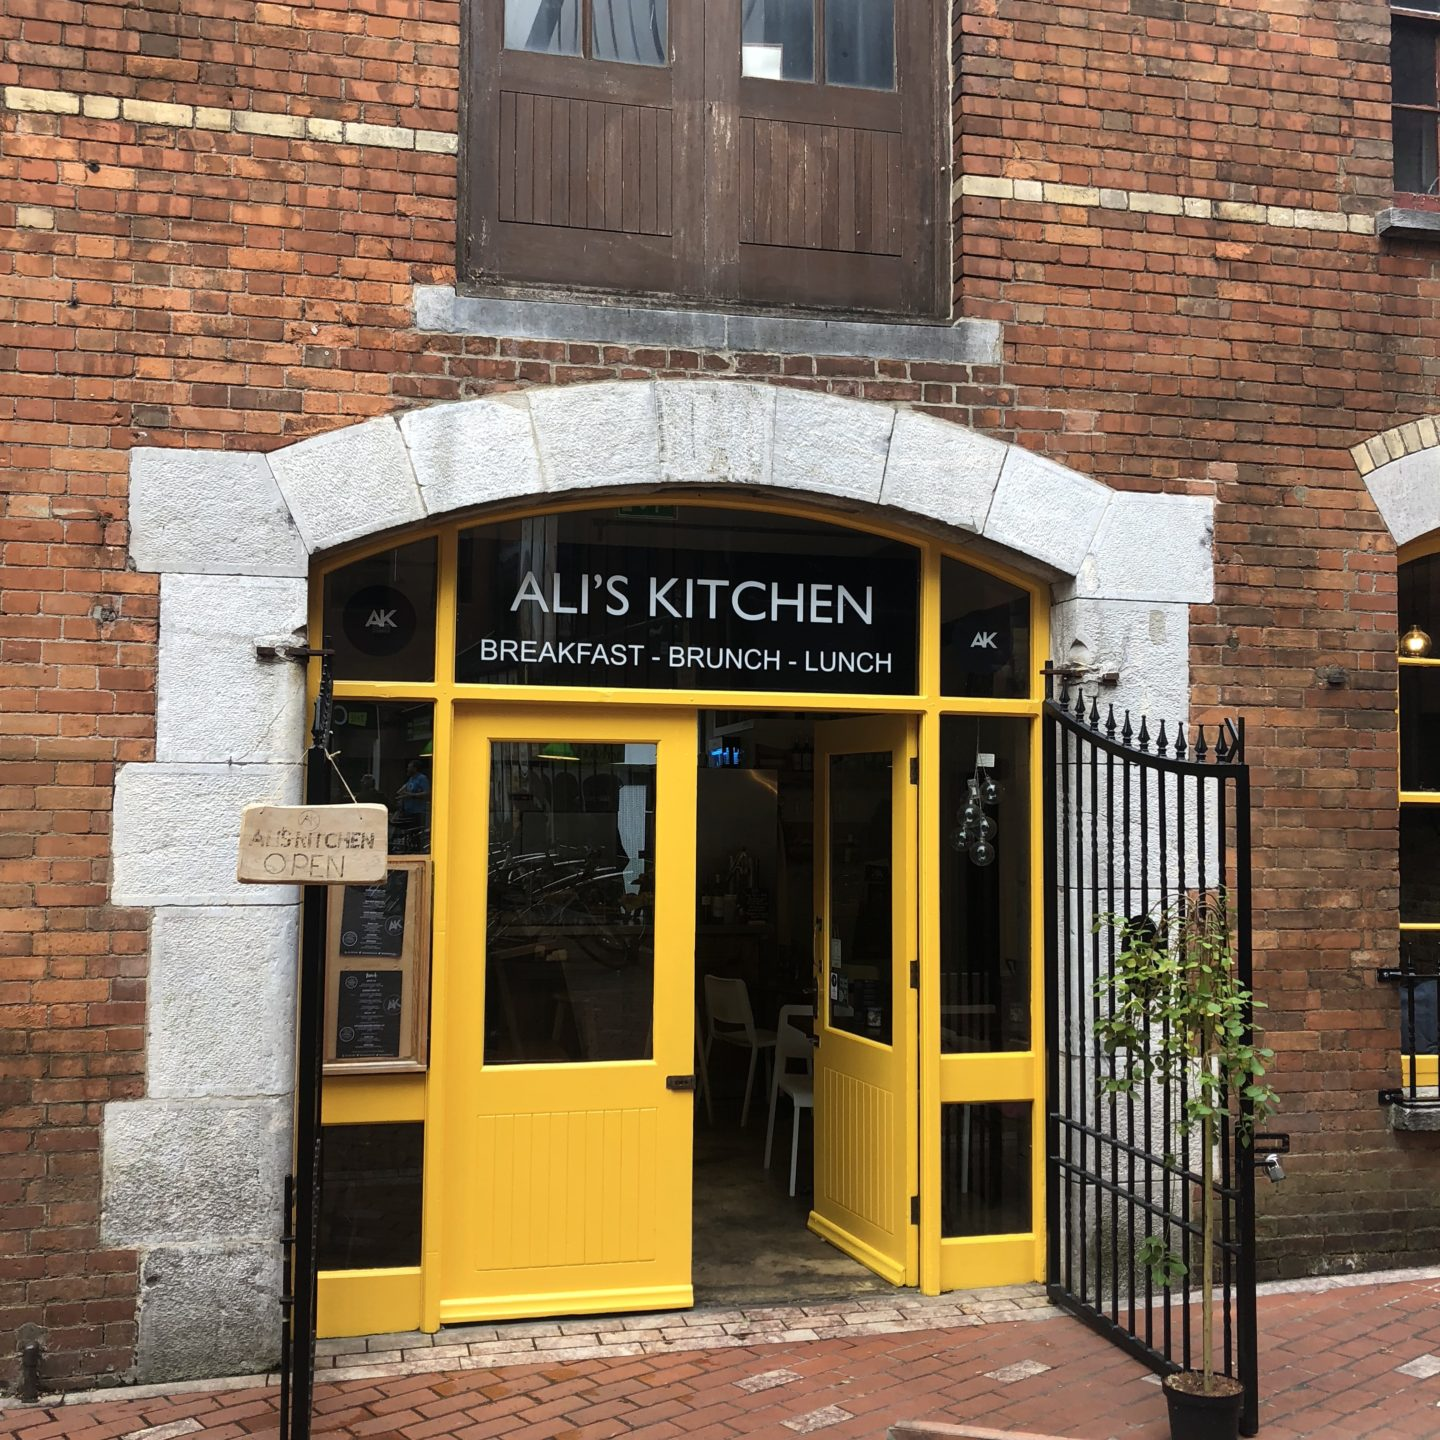 Alis Kitchen - Paul St, Cork City, Ireland - Bakehouse and Brunch - Delicious Food and Excellent Service. BadMammy.com